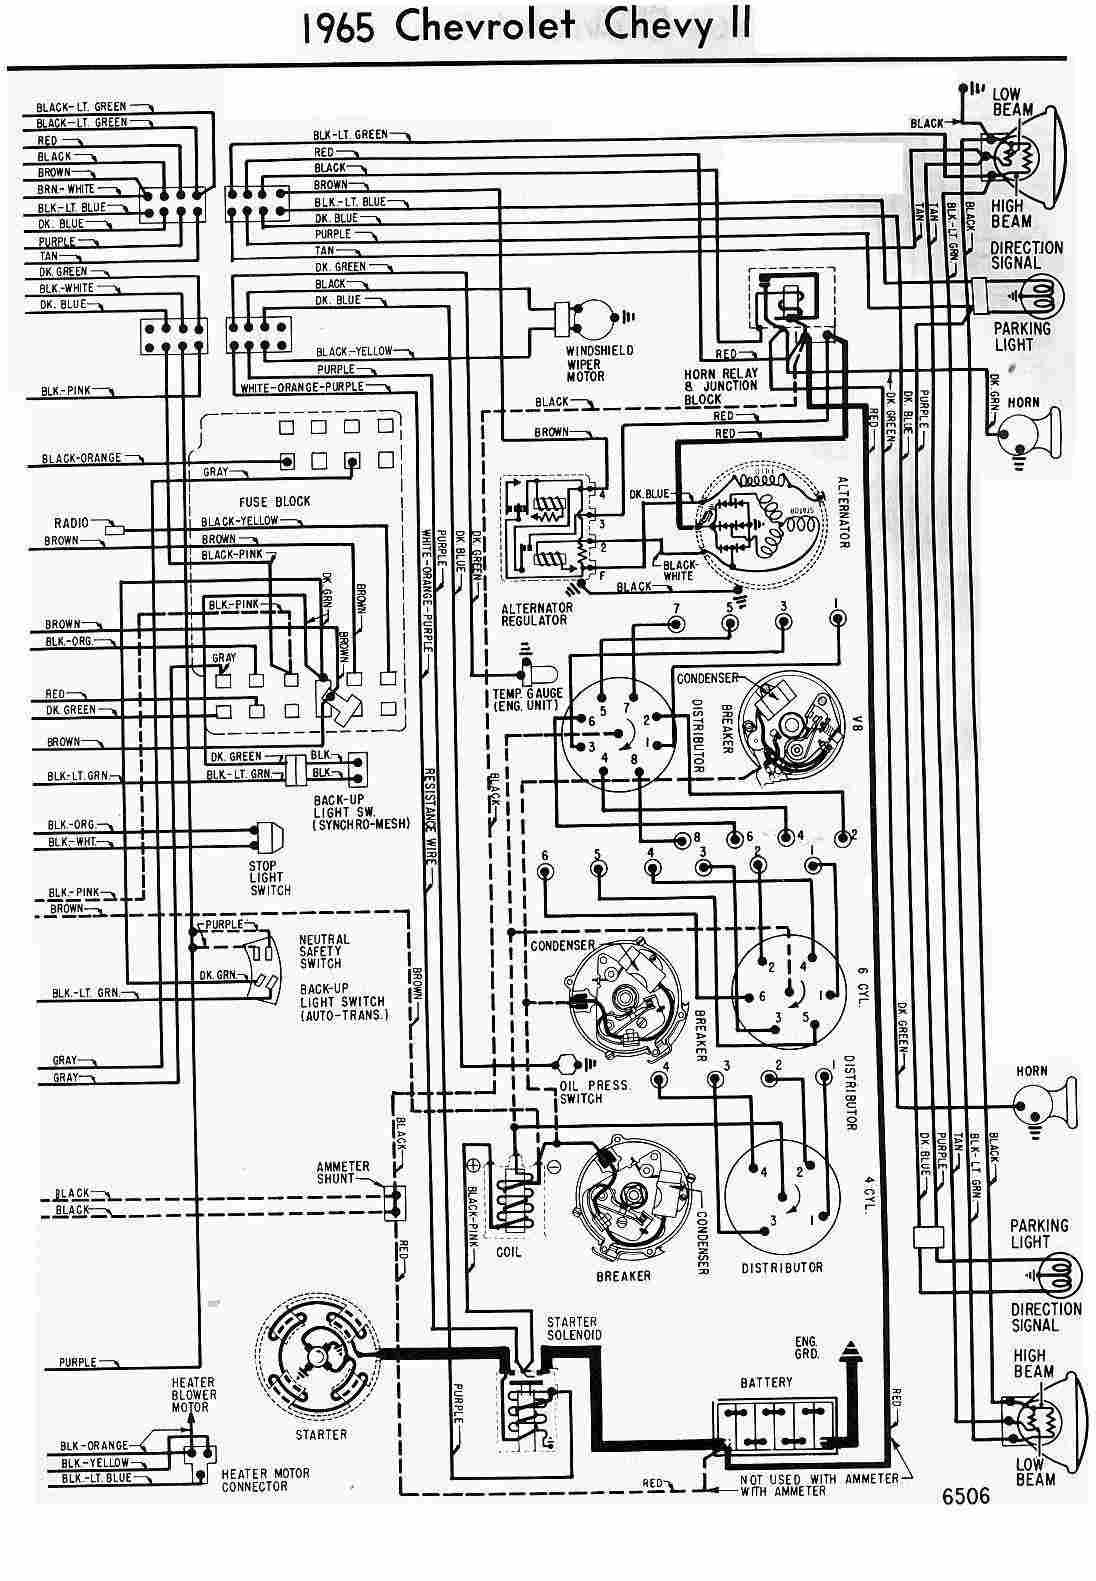 wiring diagram diagram of 1965 chevrolet chevy ii?t=1508393184 chevrolet car manuals, wiring diagrams pdf & fault codes 1966 impala wiring diagram at edmiracle.co